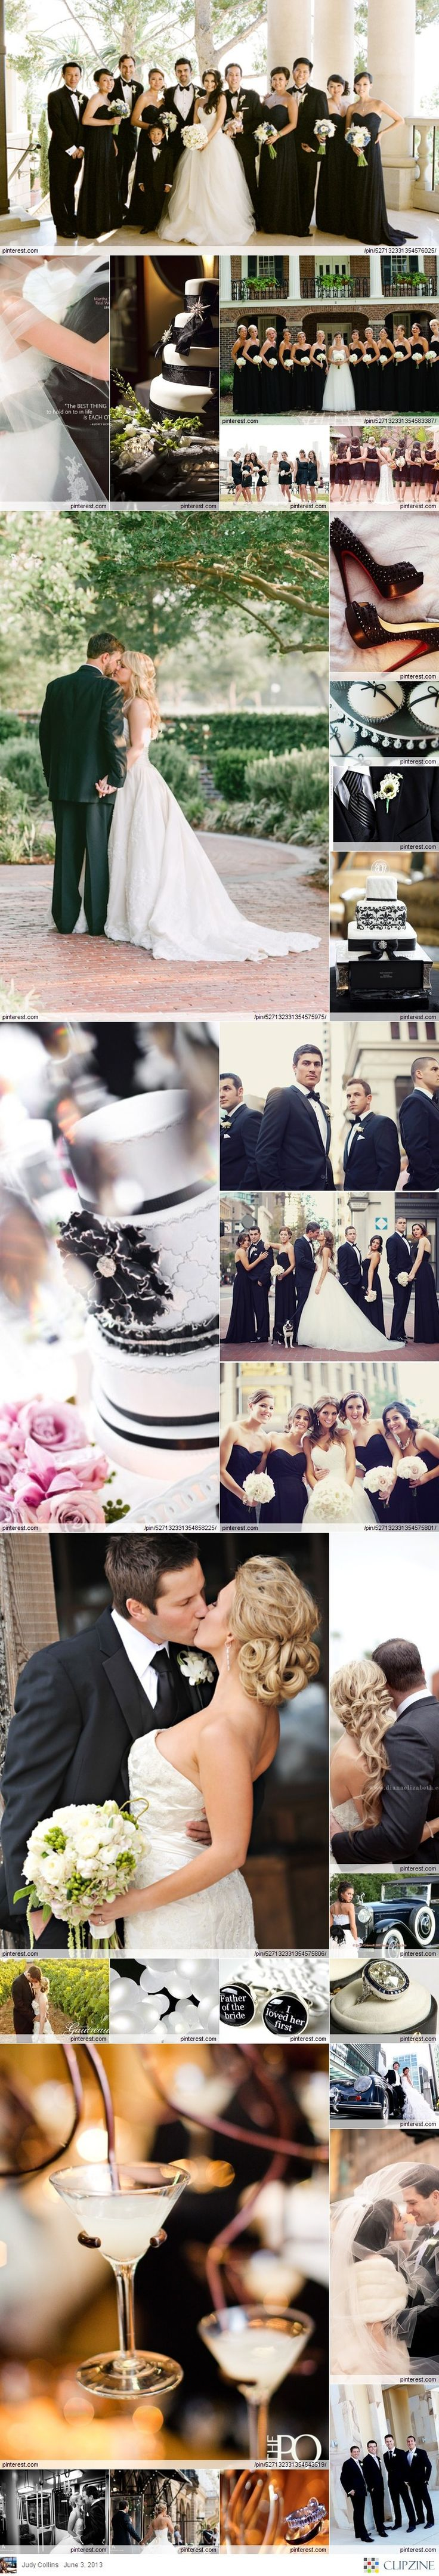 #black & white wedding ... Wedding ideas for brides, grooms, parents & planners!!